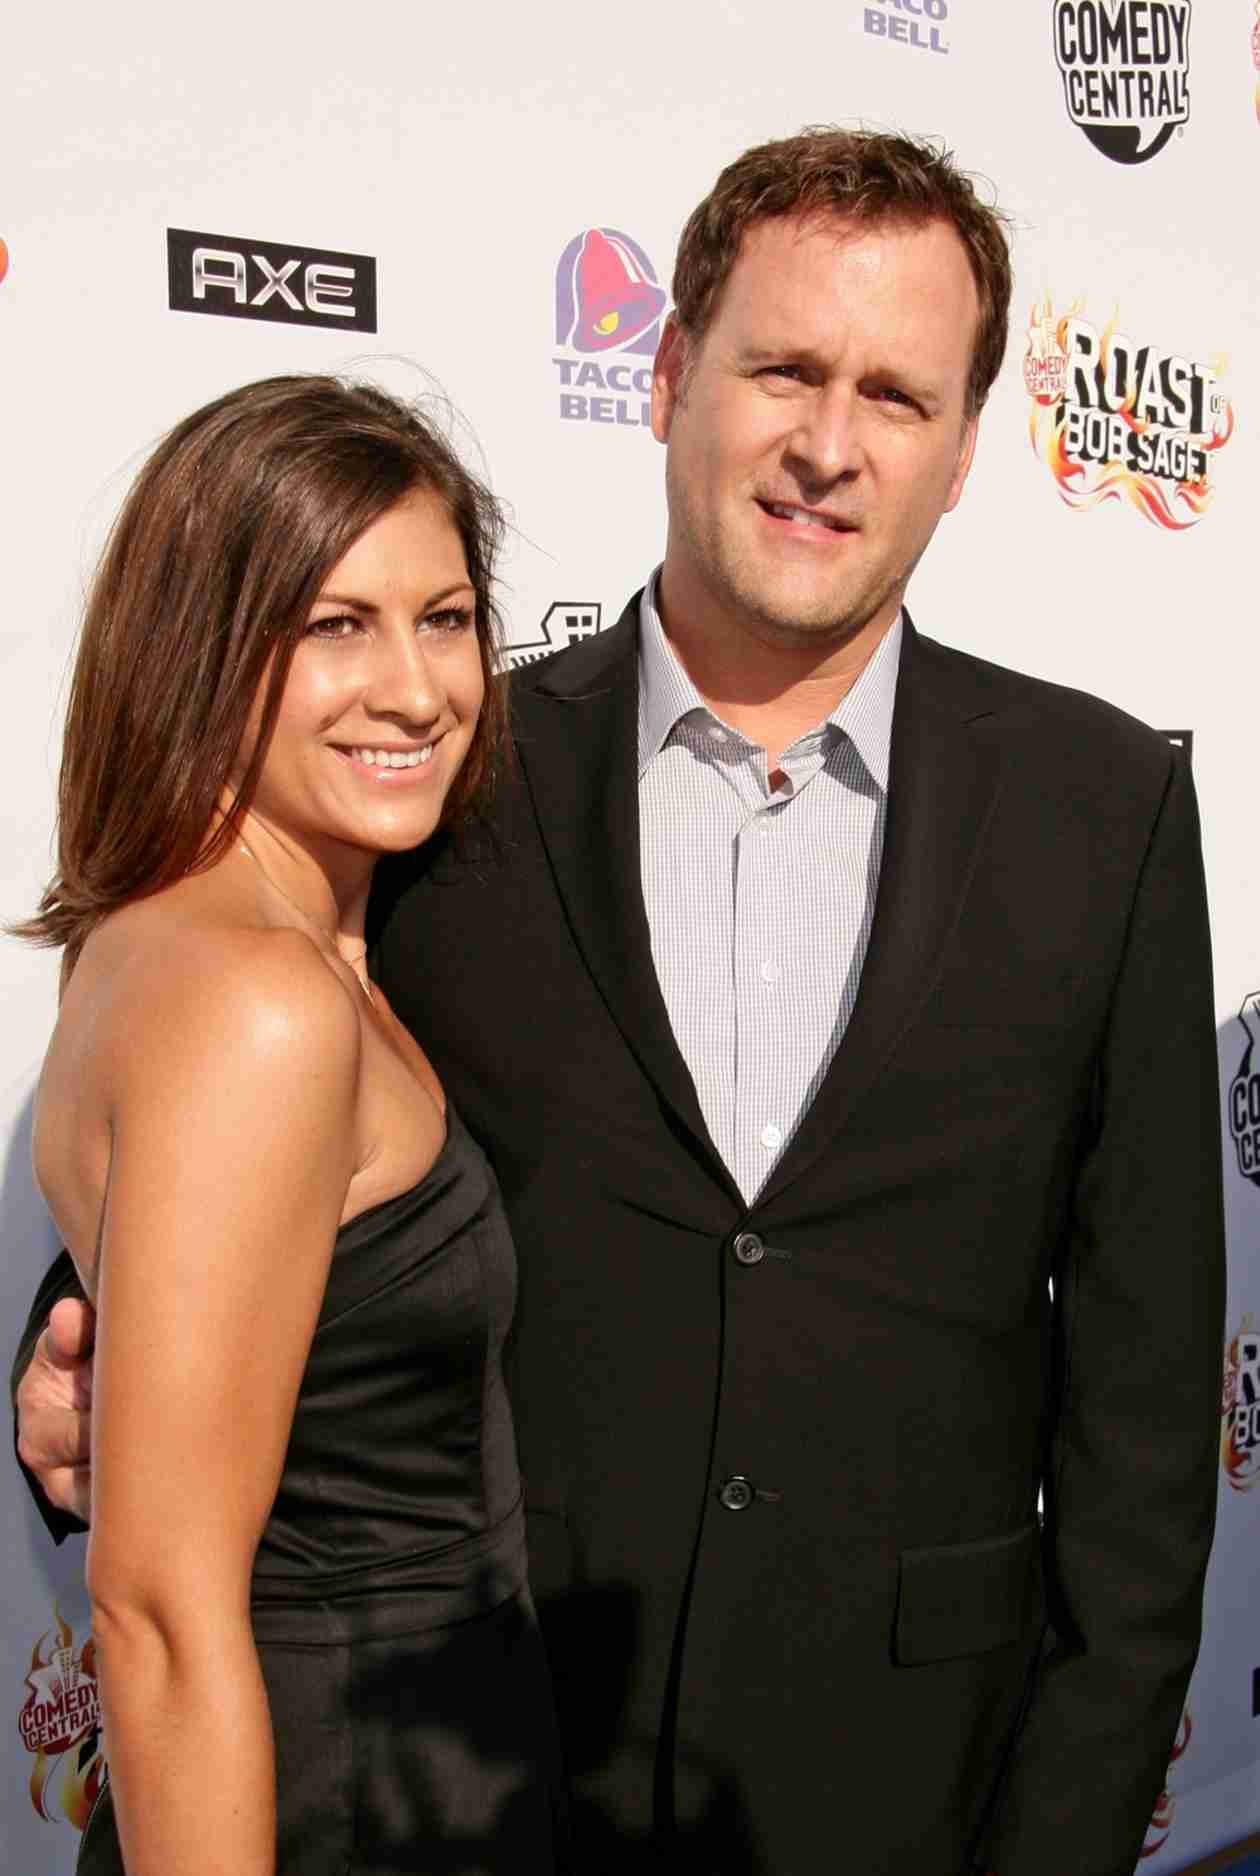 Dave Coulier's Montana Wedding Is a Full House Reunion! Who Attended? (VIDEO)